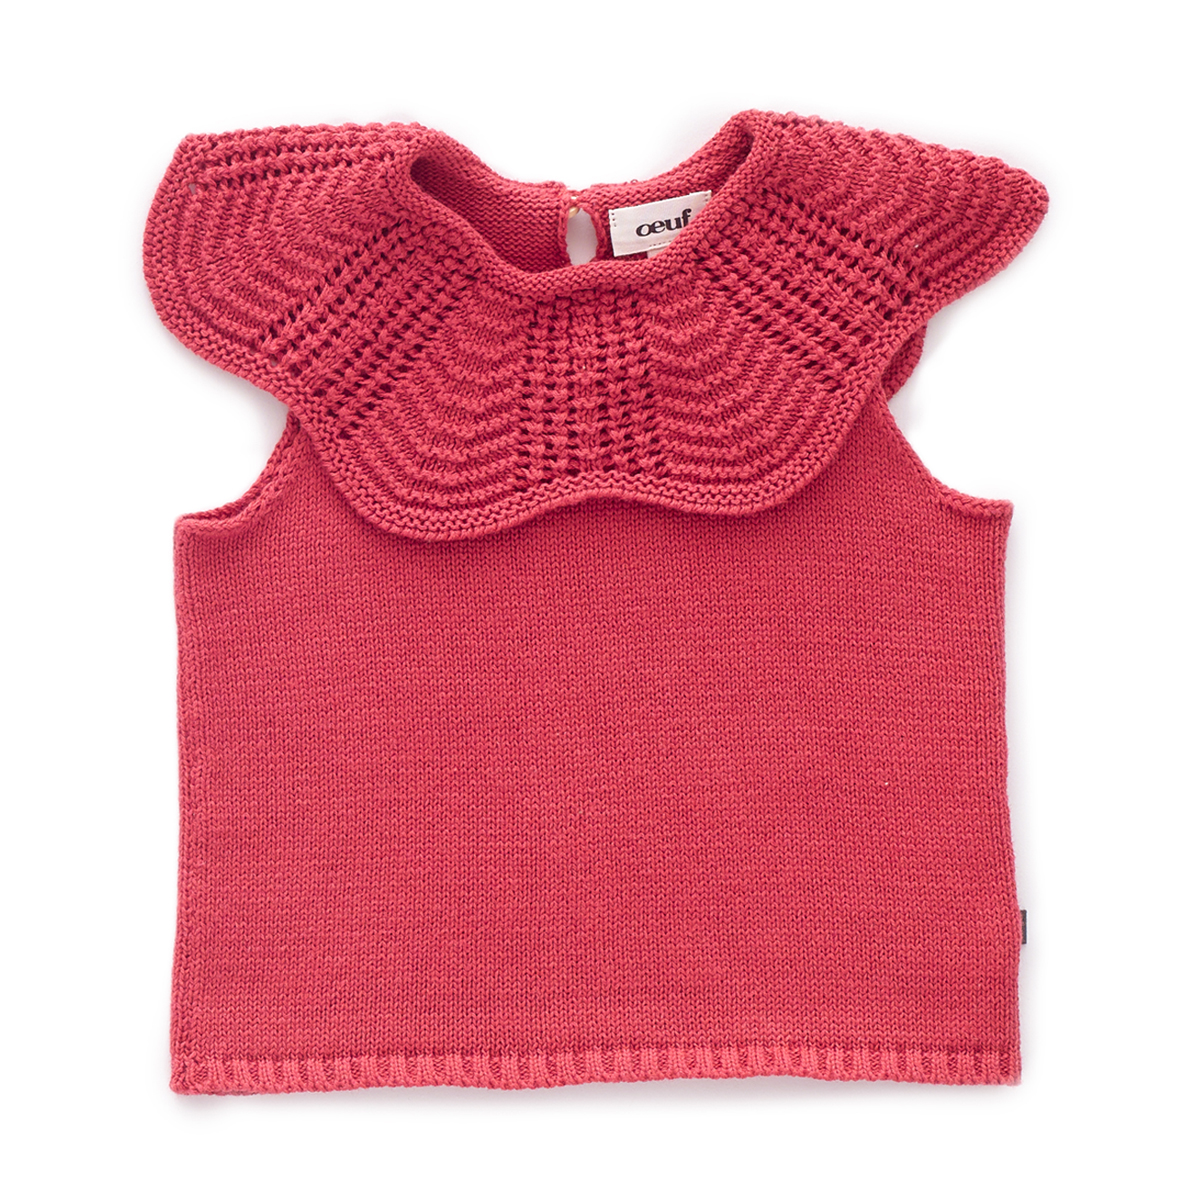 Oeuf Scalloped Collar Top in Cranberry